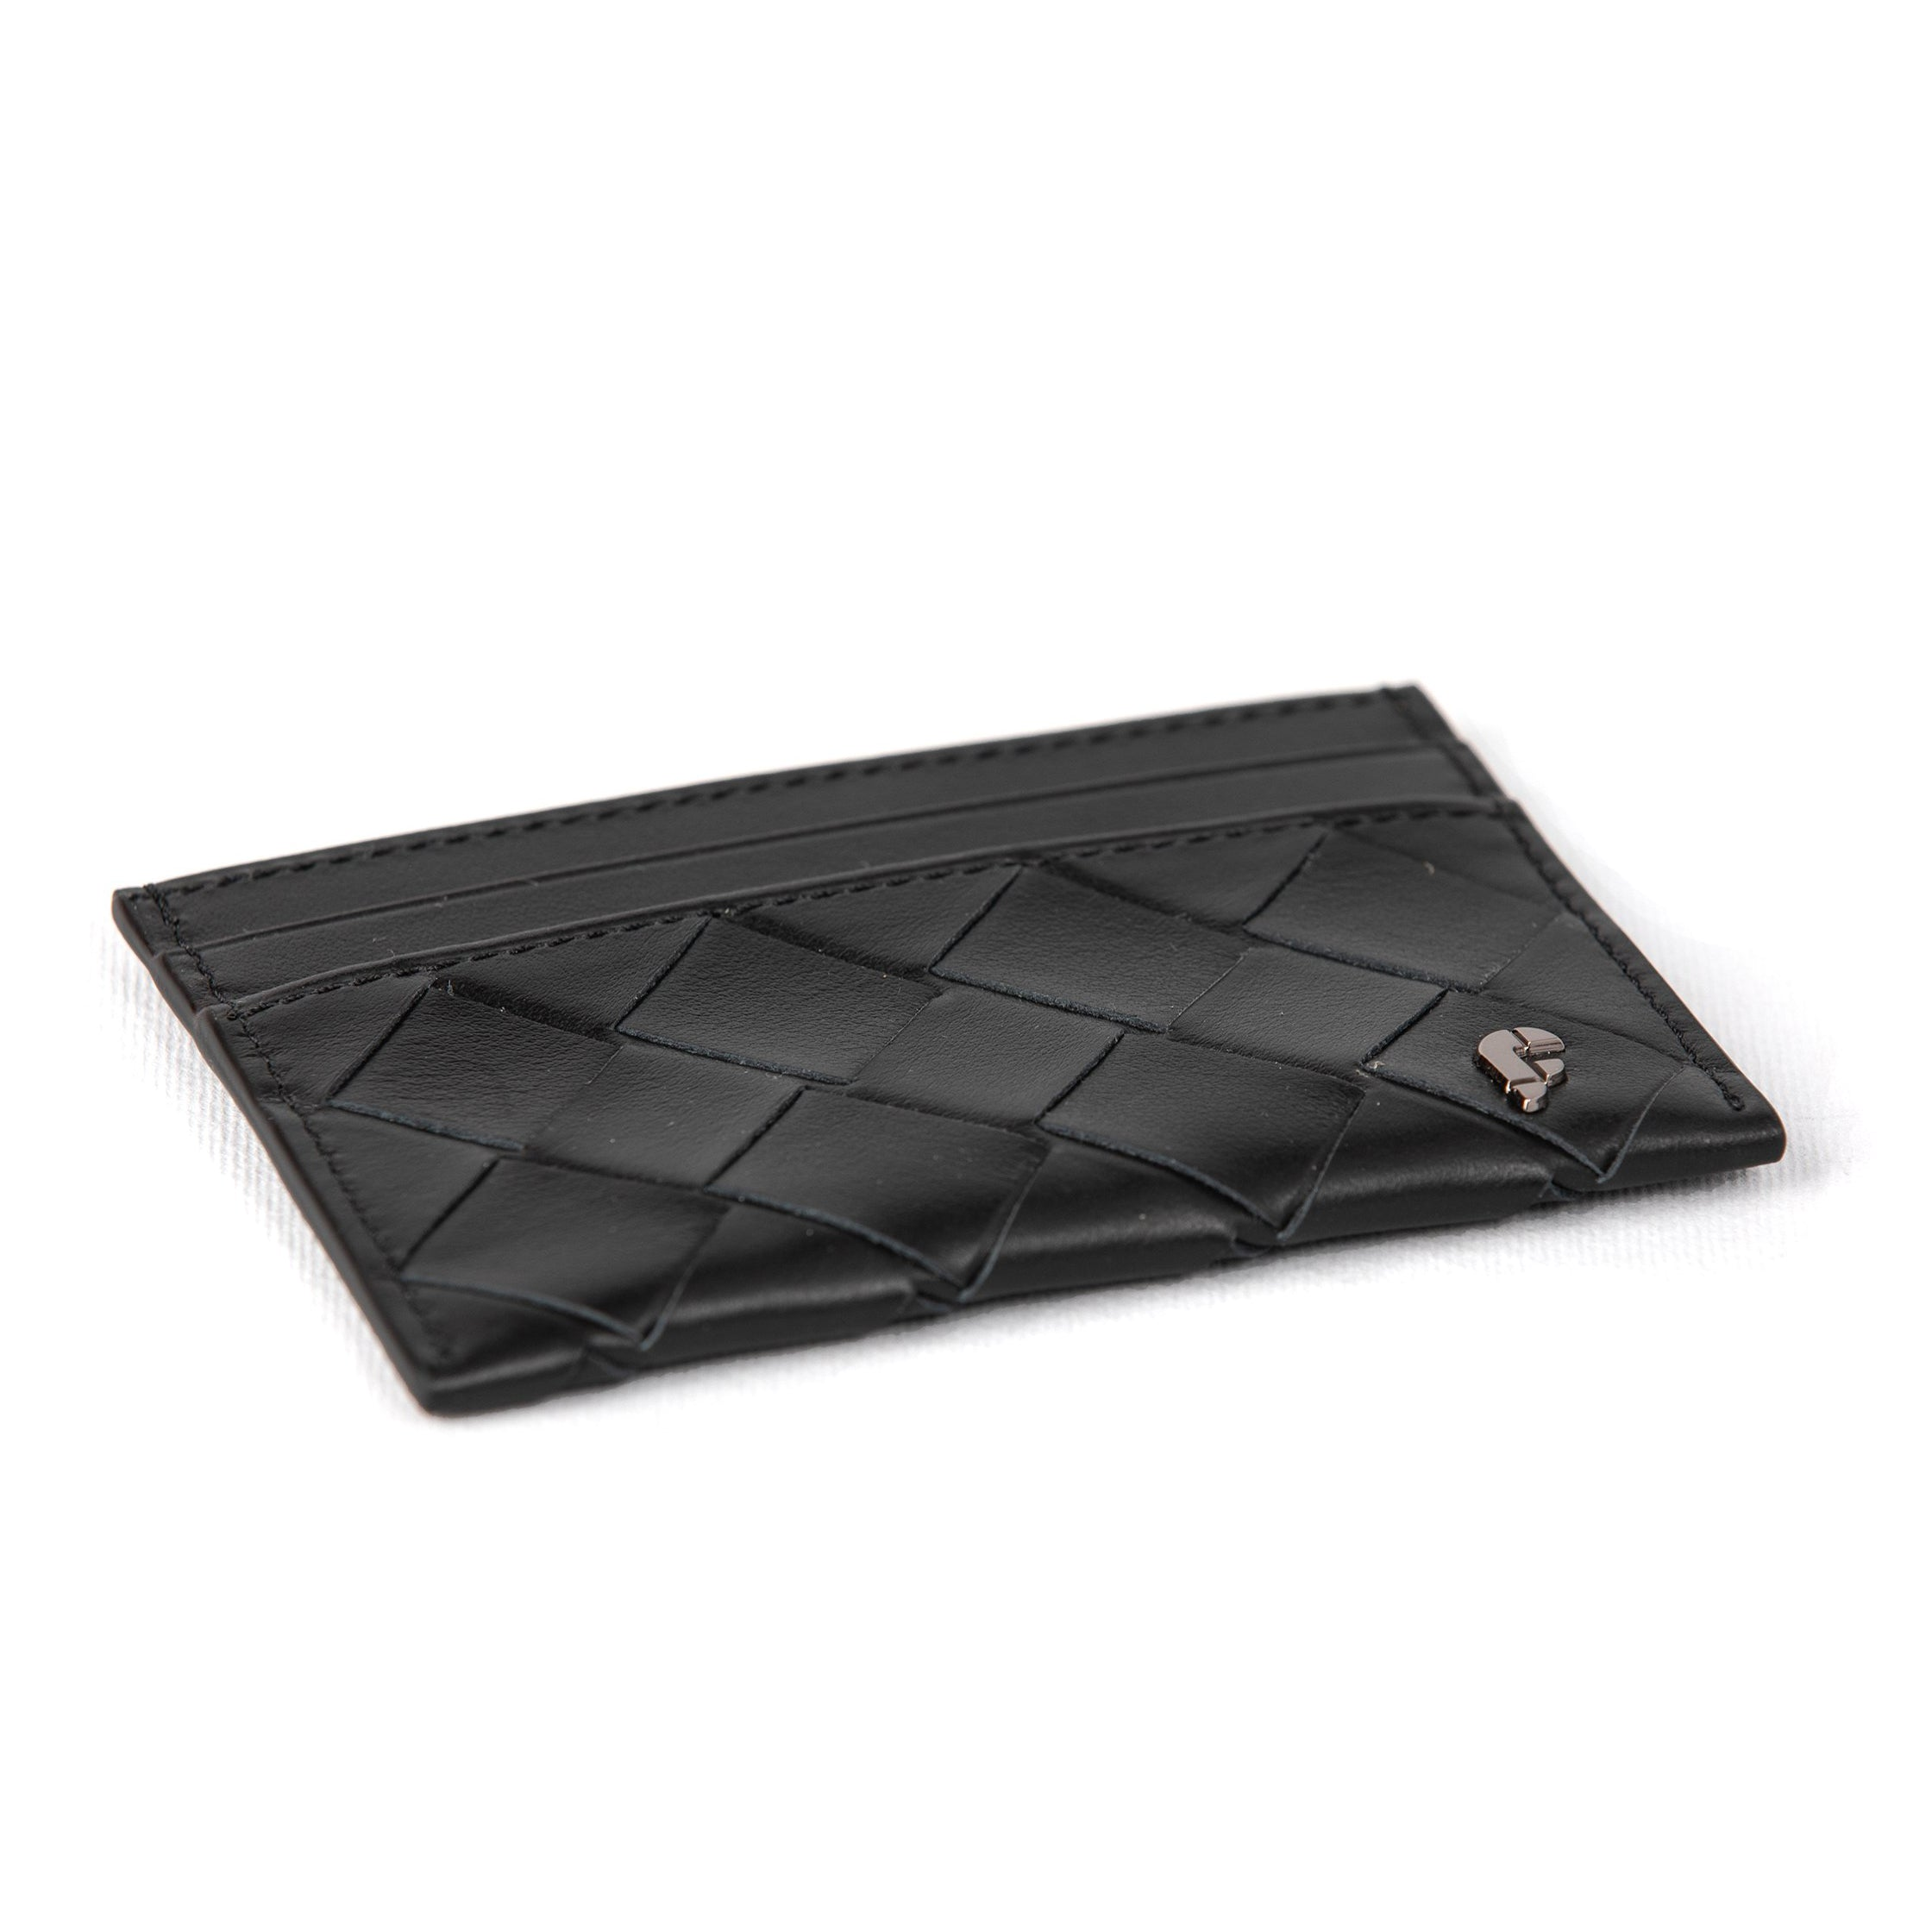 Black Weaving Matte Credit Card Holder (FP105)